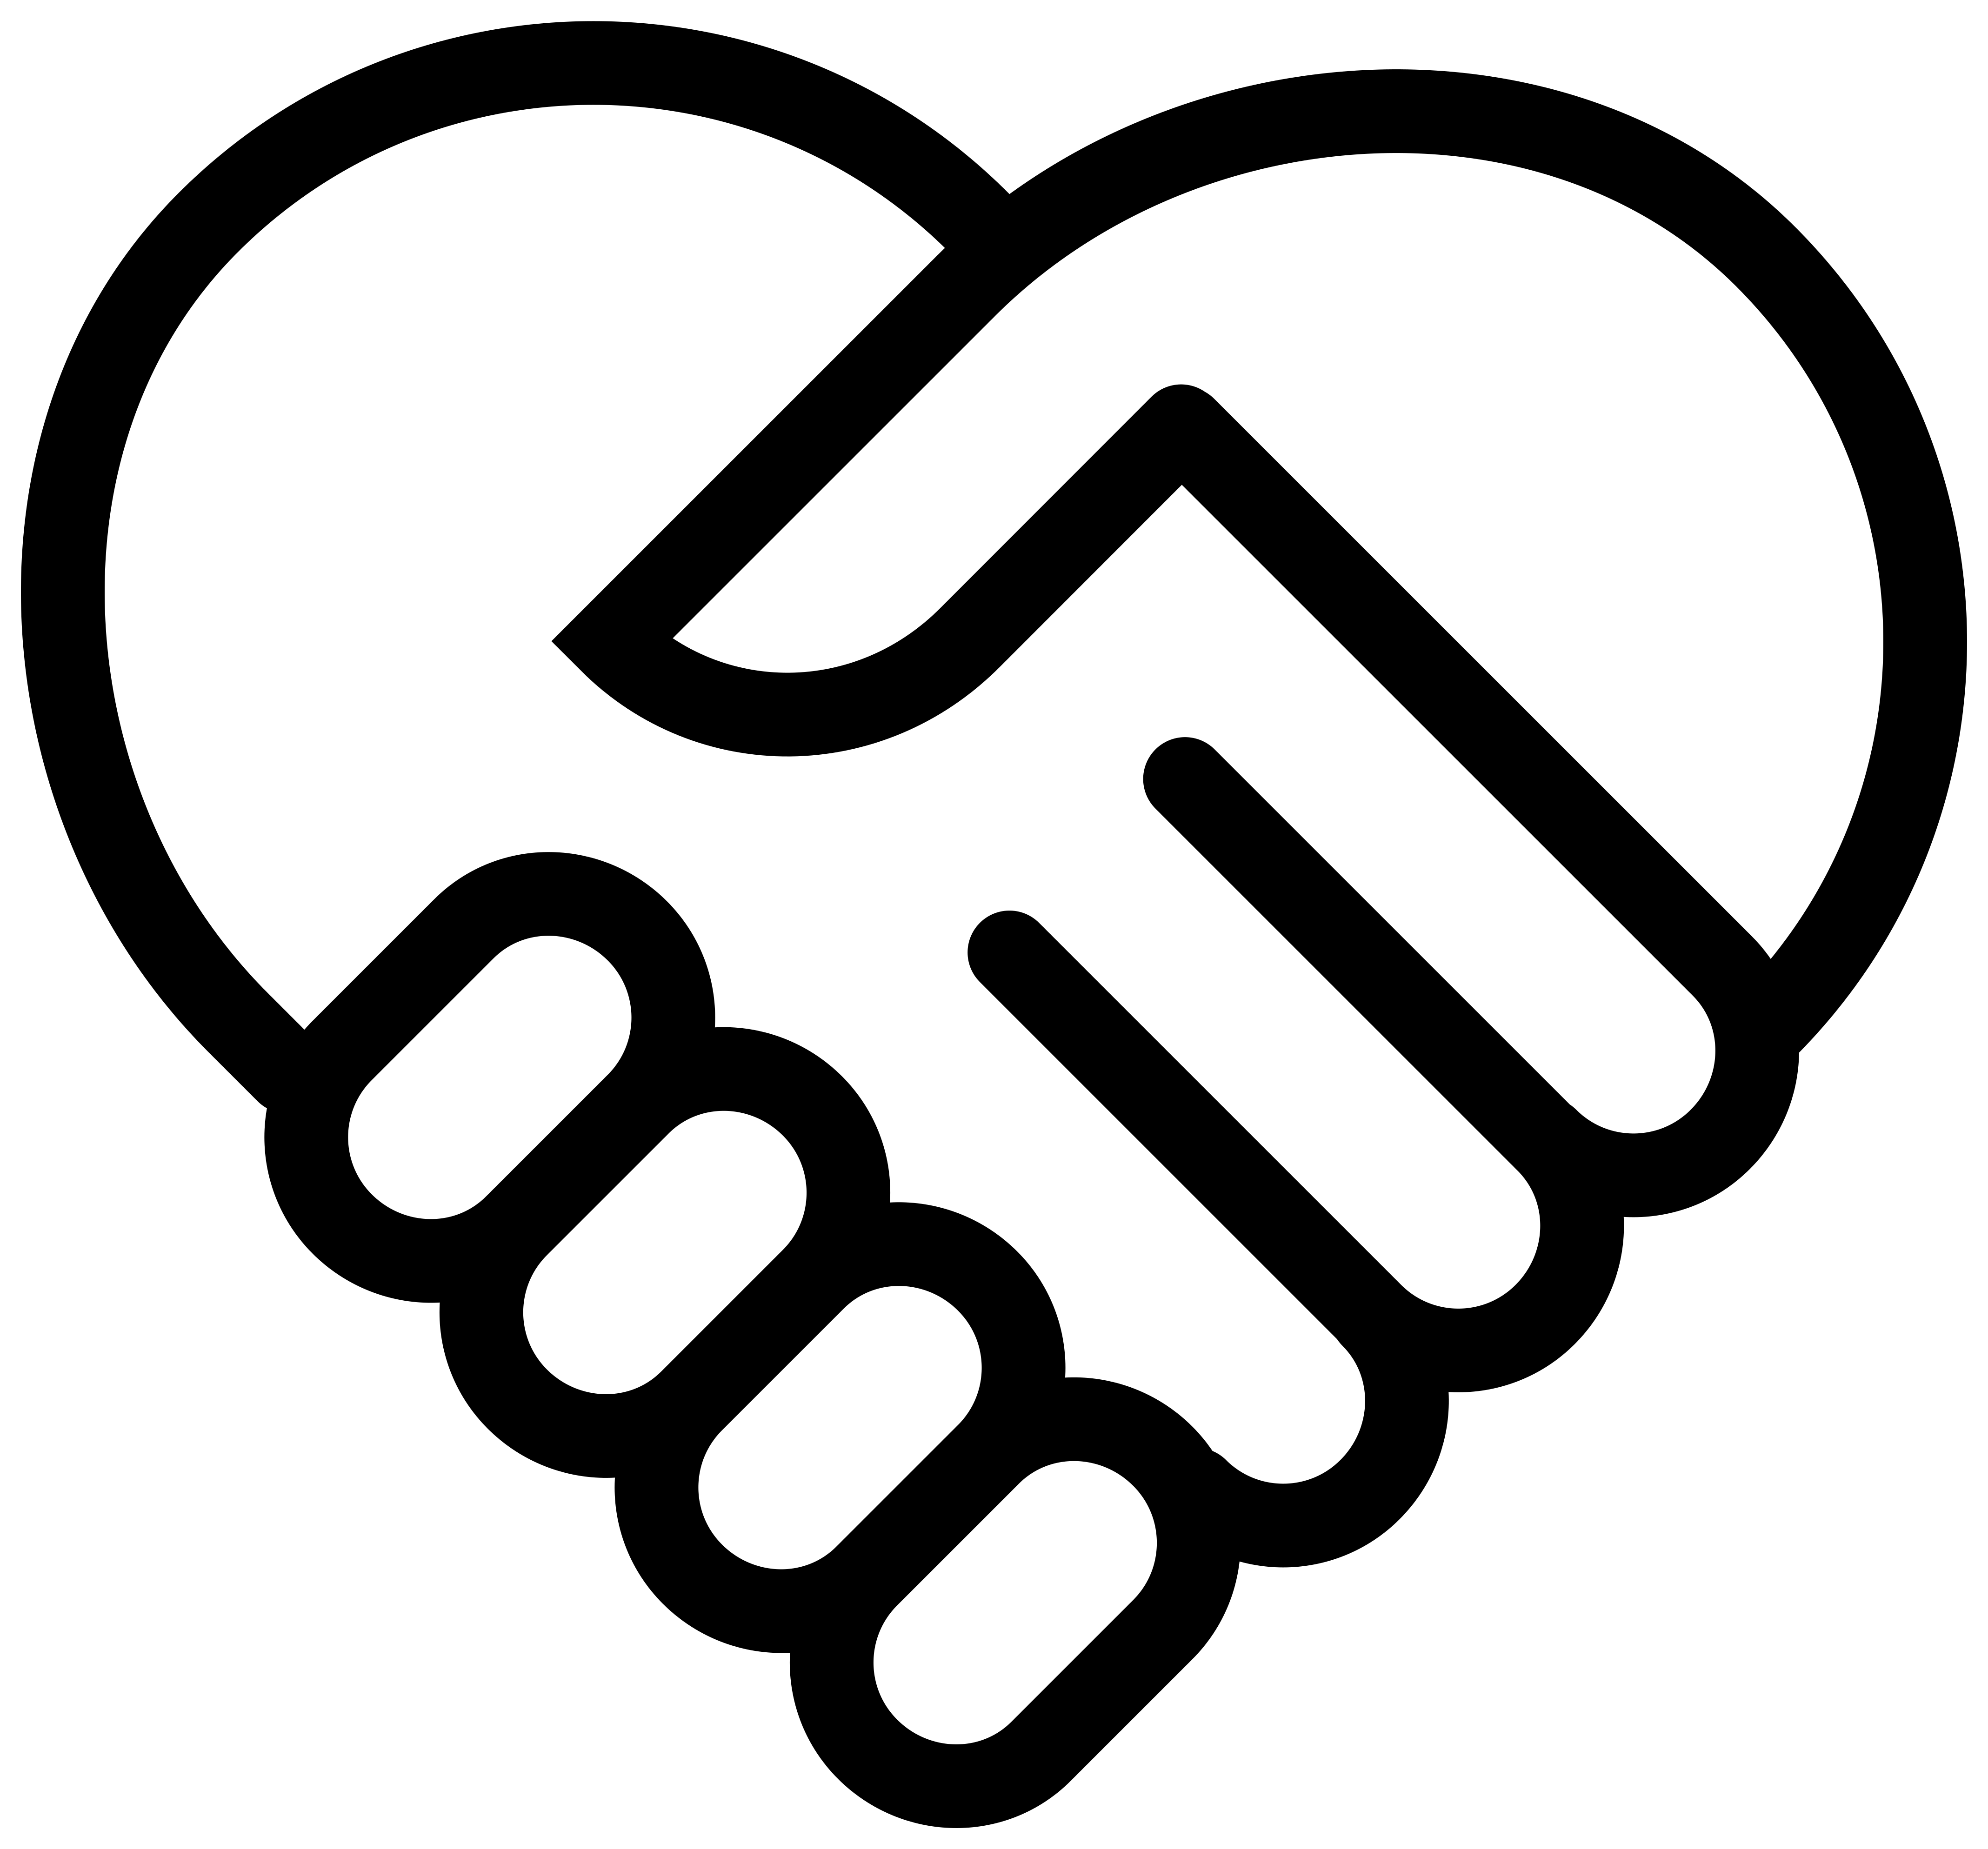 Heart and hand clipart graphic free download File:Heart-hand-shake.svg - Wikimedia Commons graphic free download